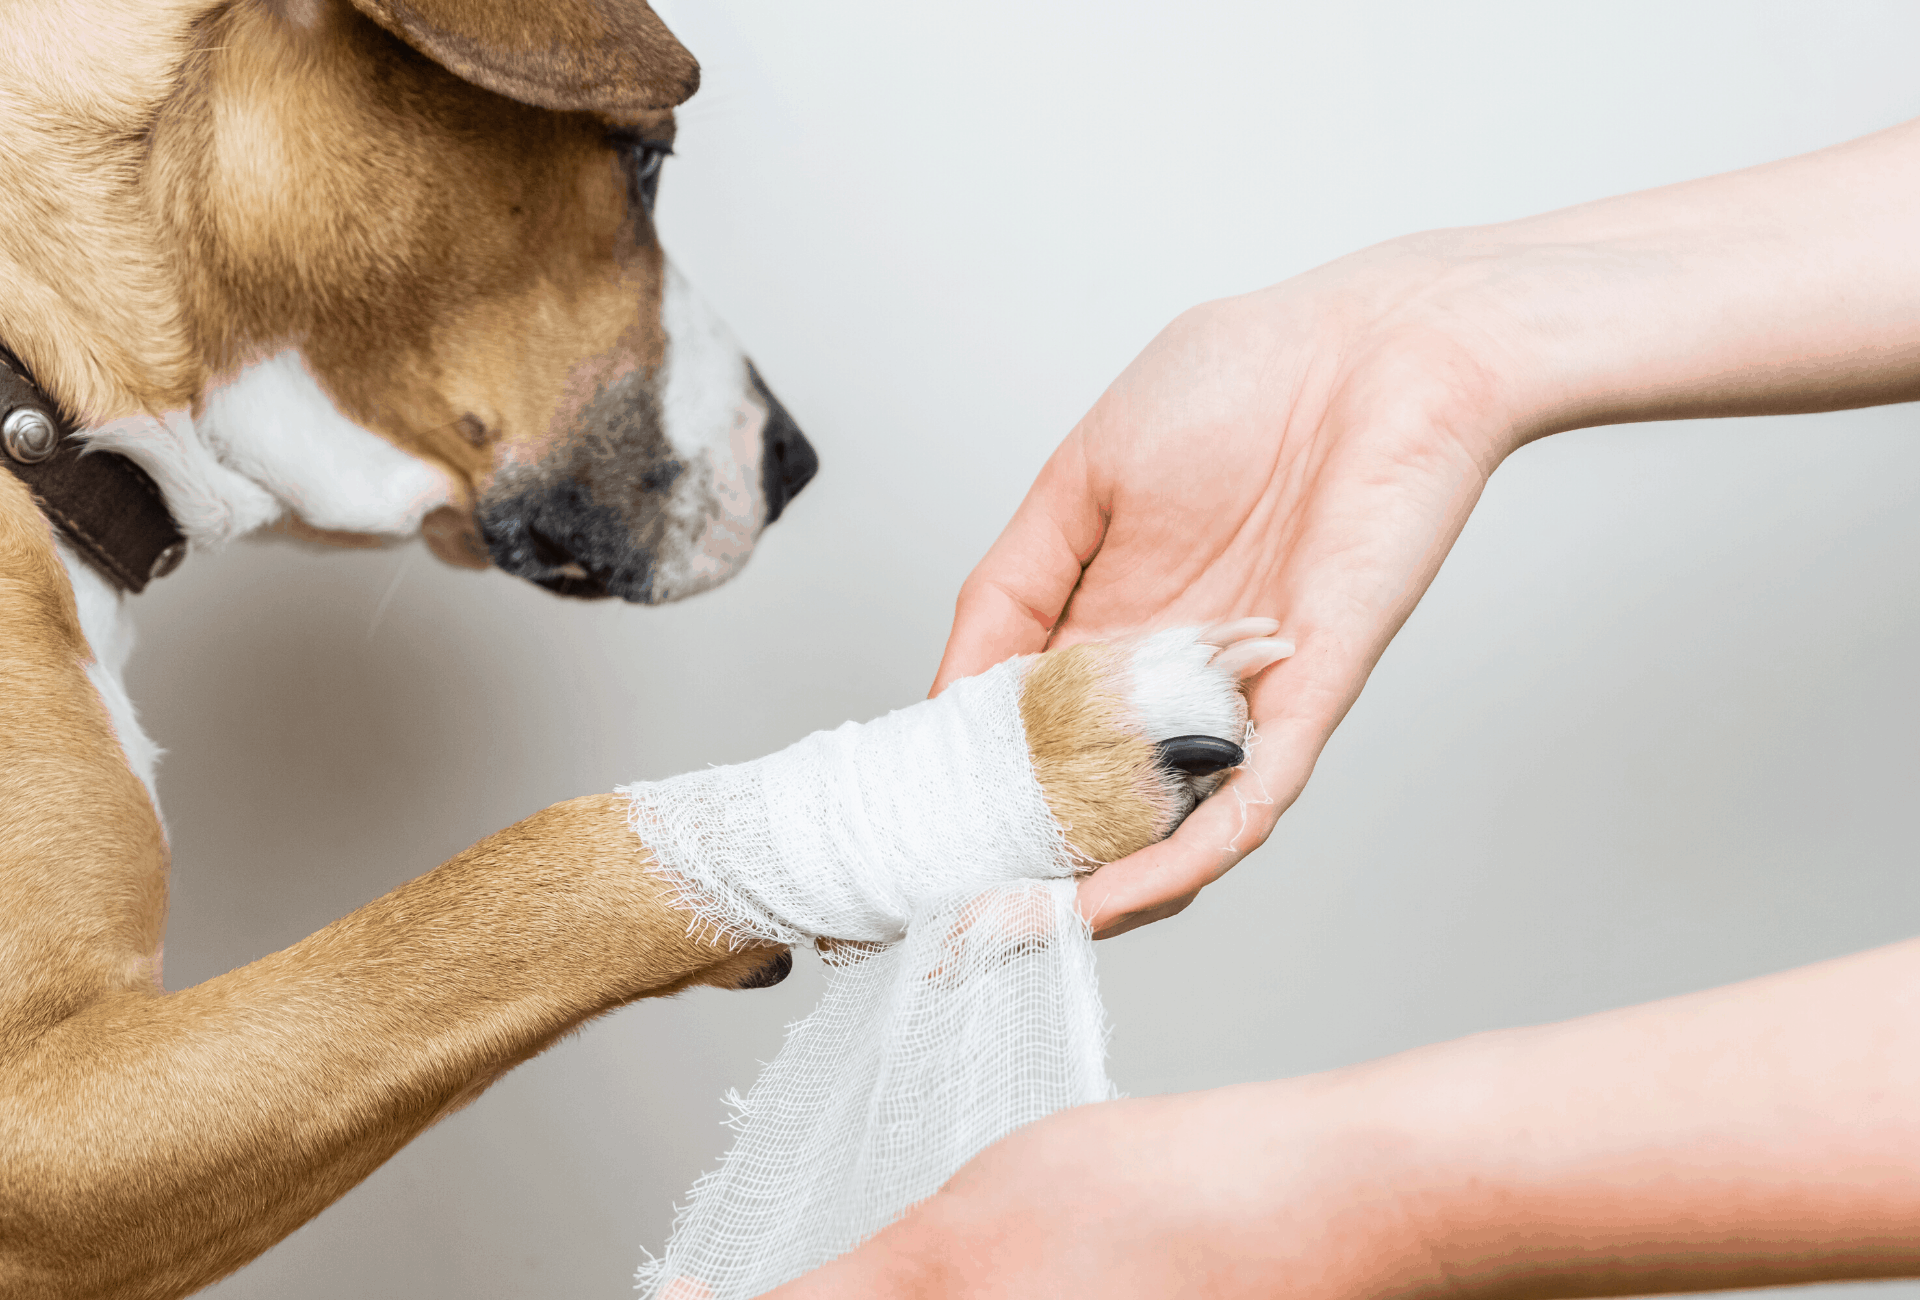 Protecting wounded paw with bandaid.